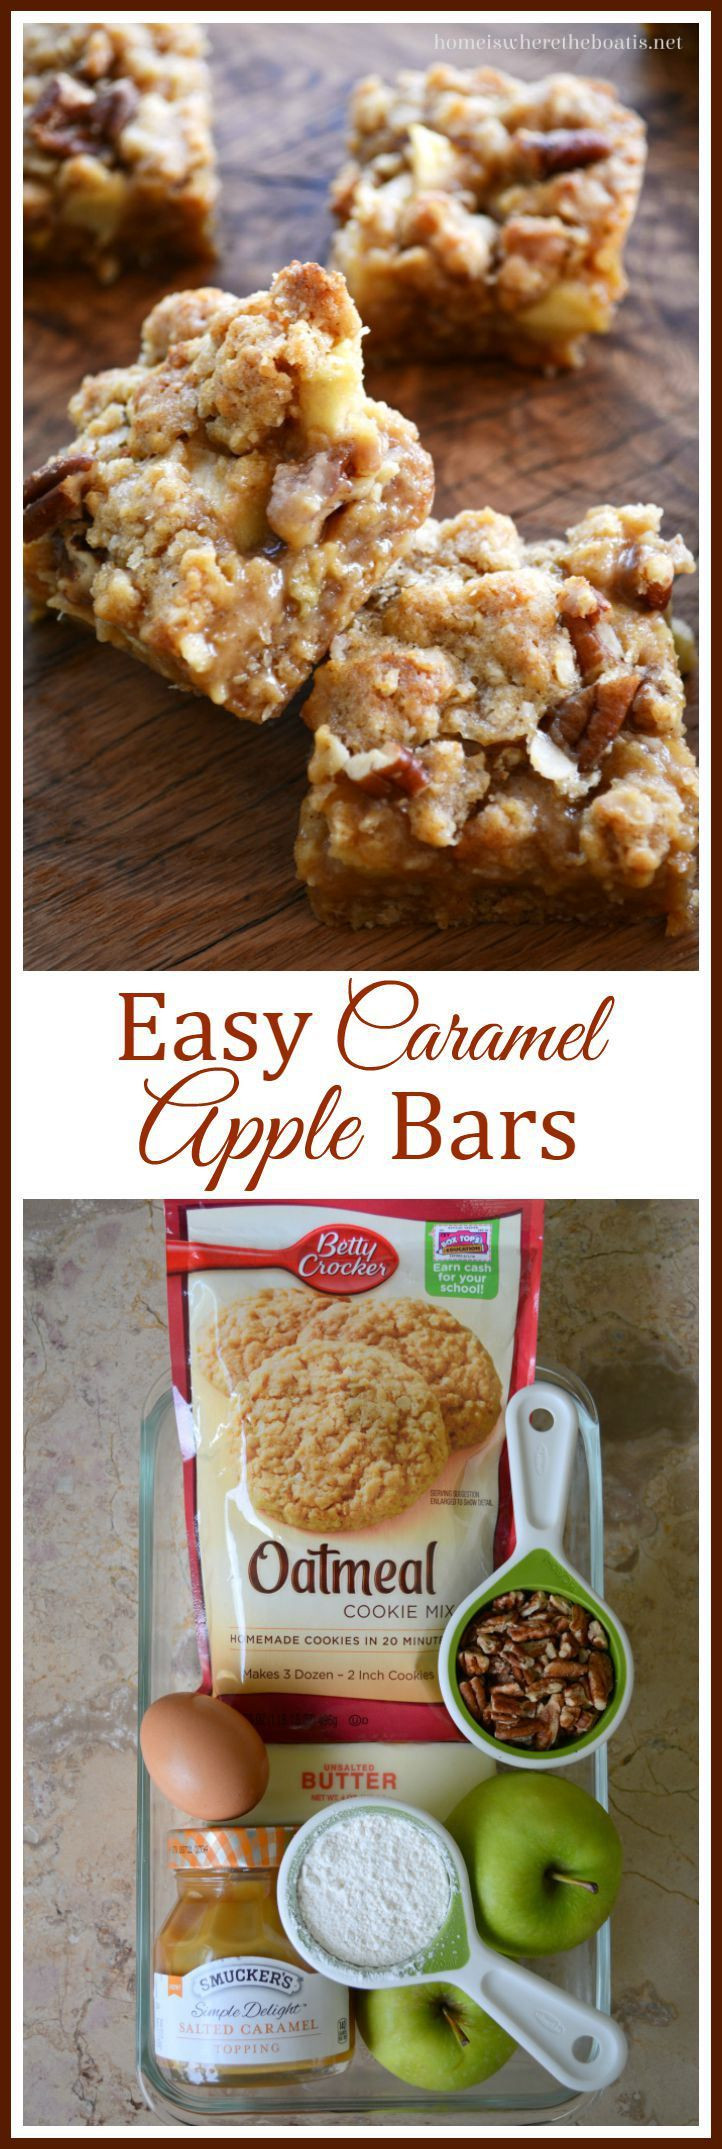 Fall Desserts For A Crowd  Easy Caramel Apple Bars An easy and crowd pleasing recipe